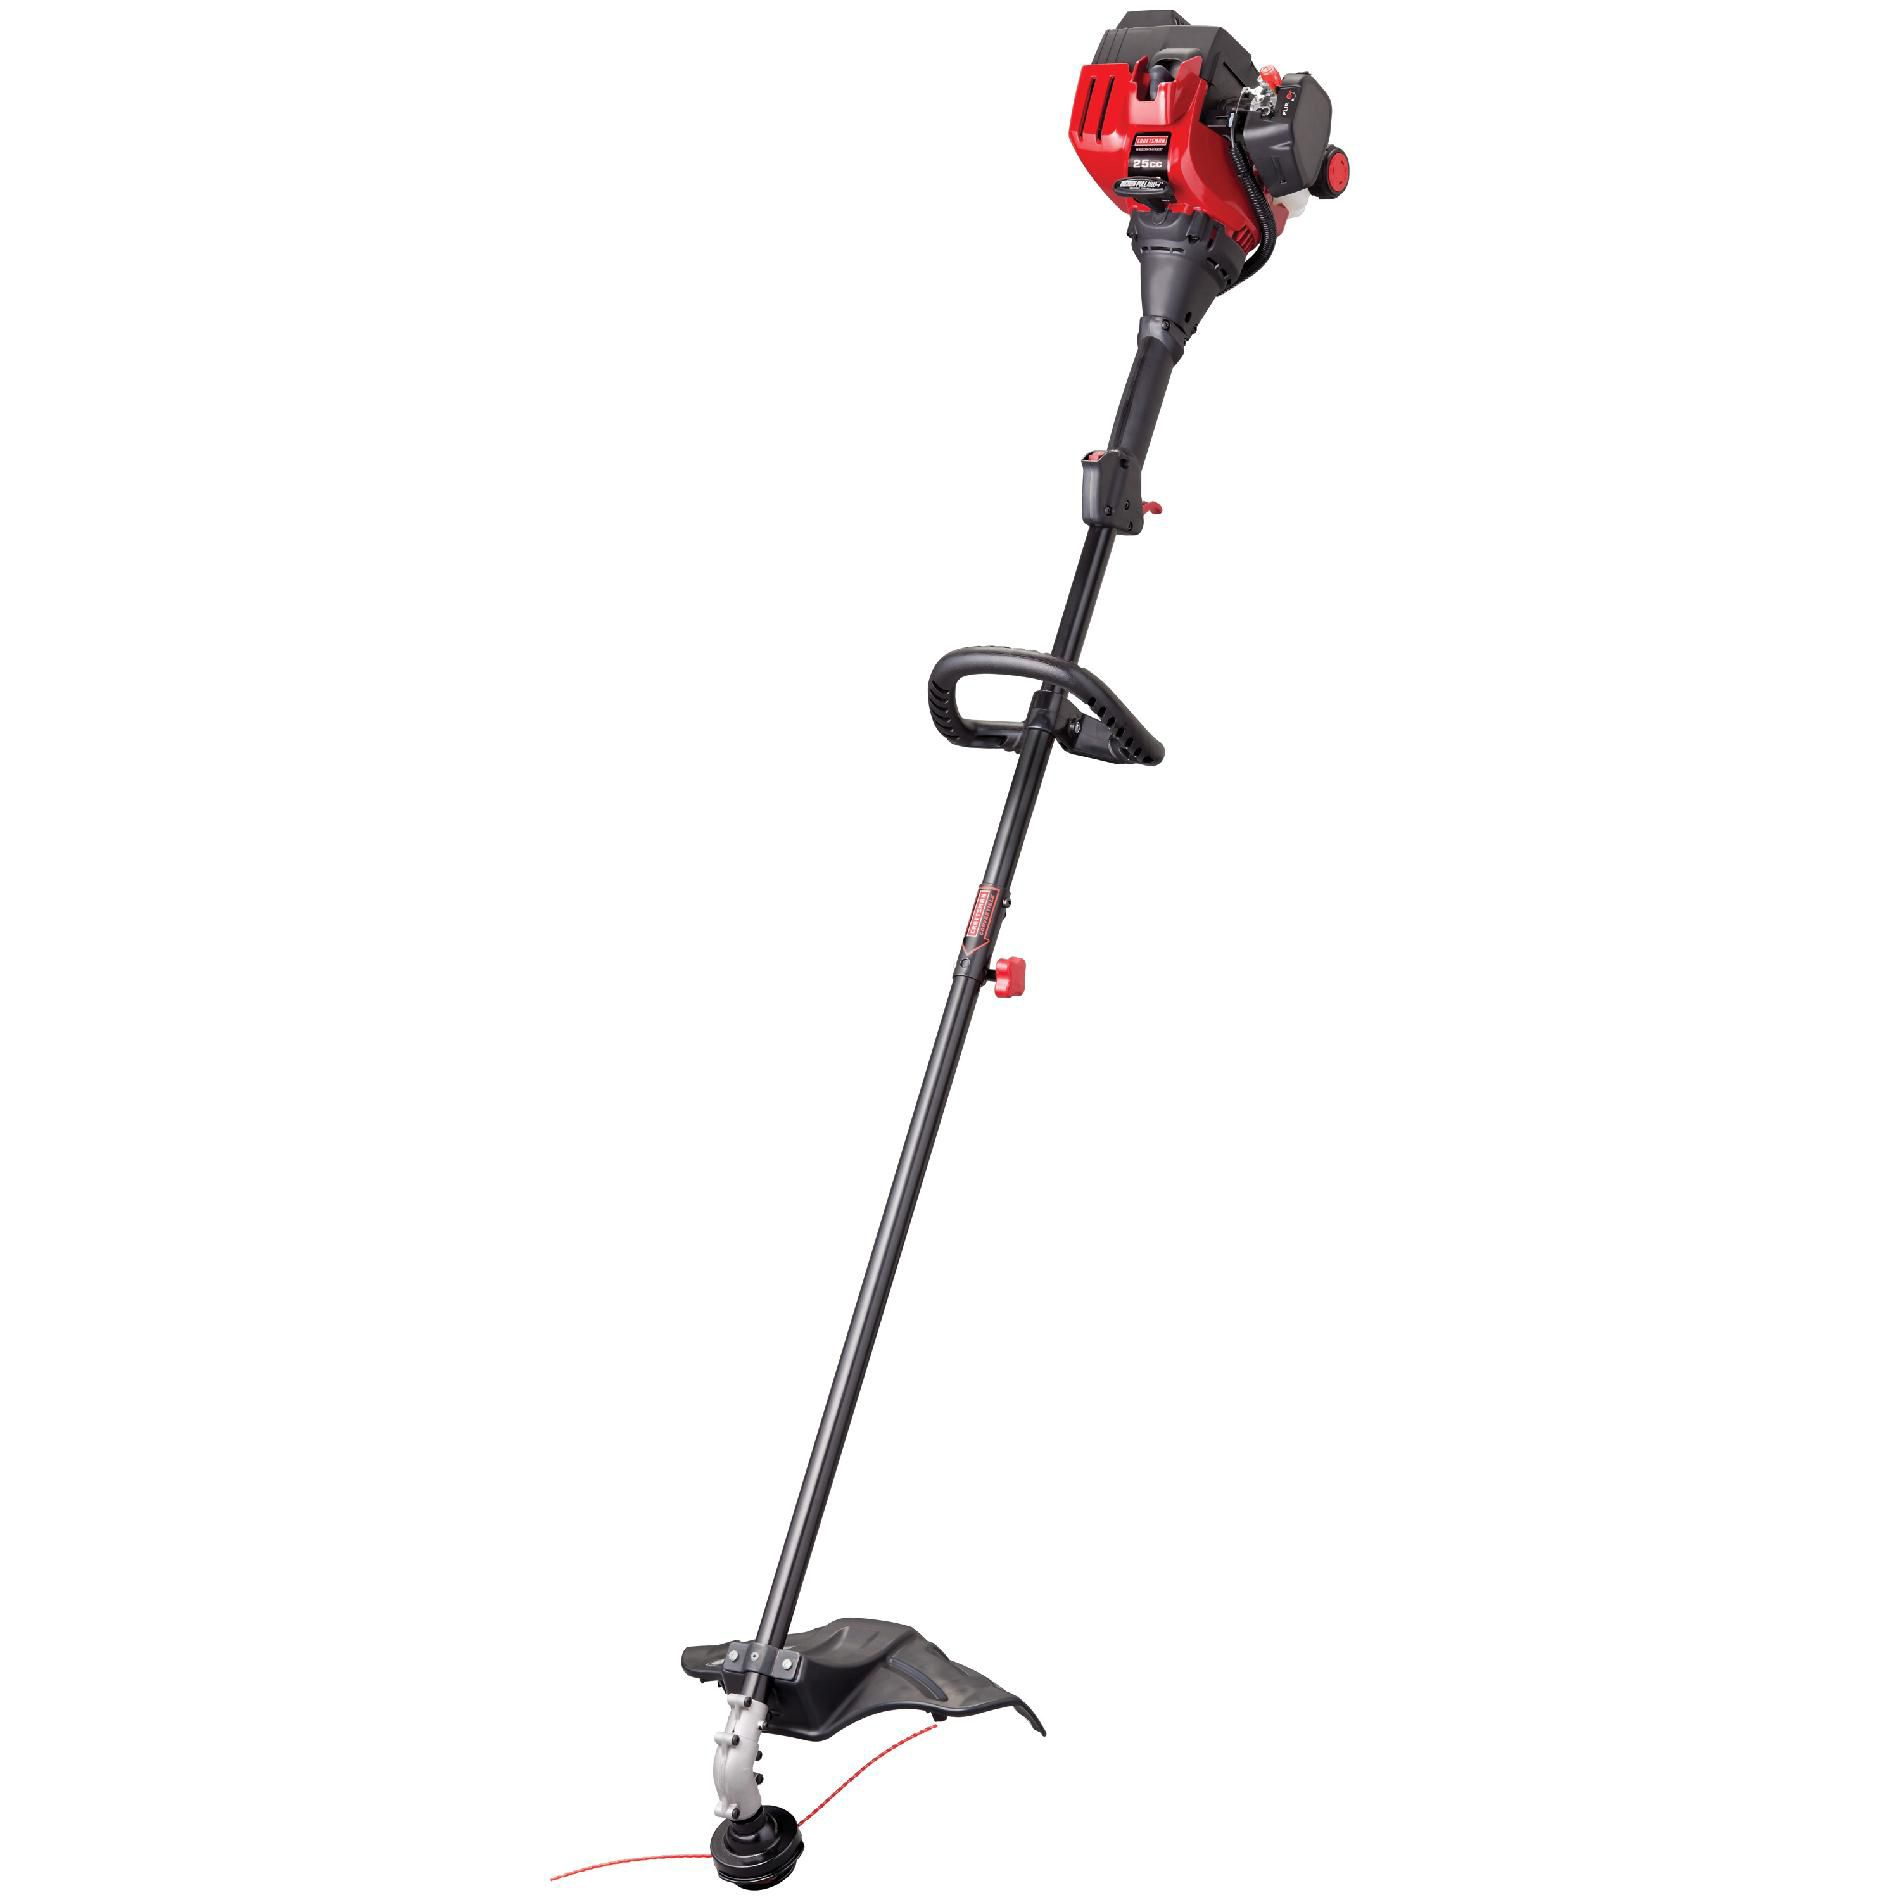 Craftsman WeedWacker Gas Trimmer 25cc 2-Cycle Straight